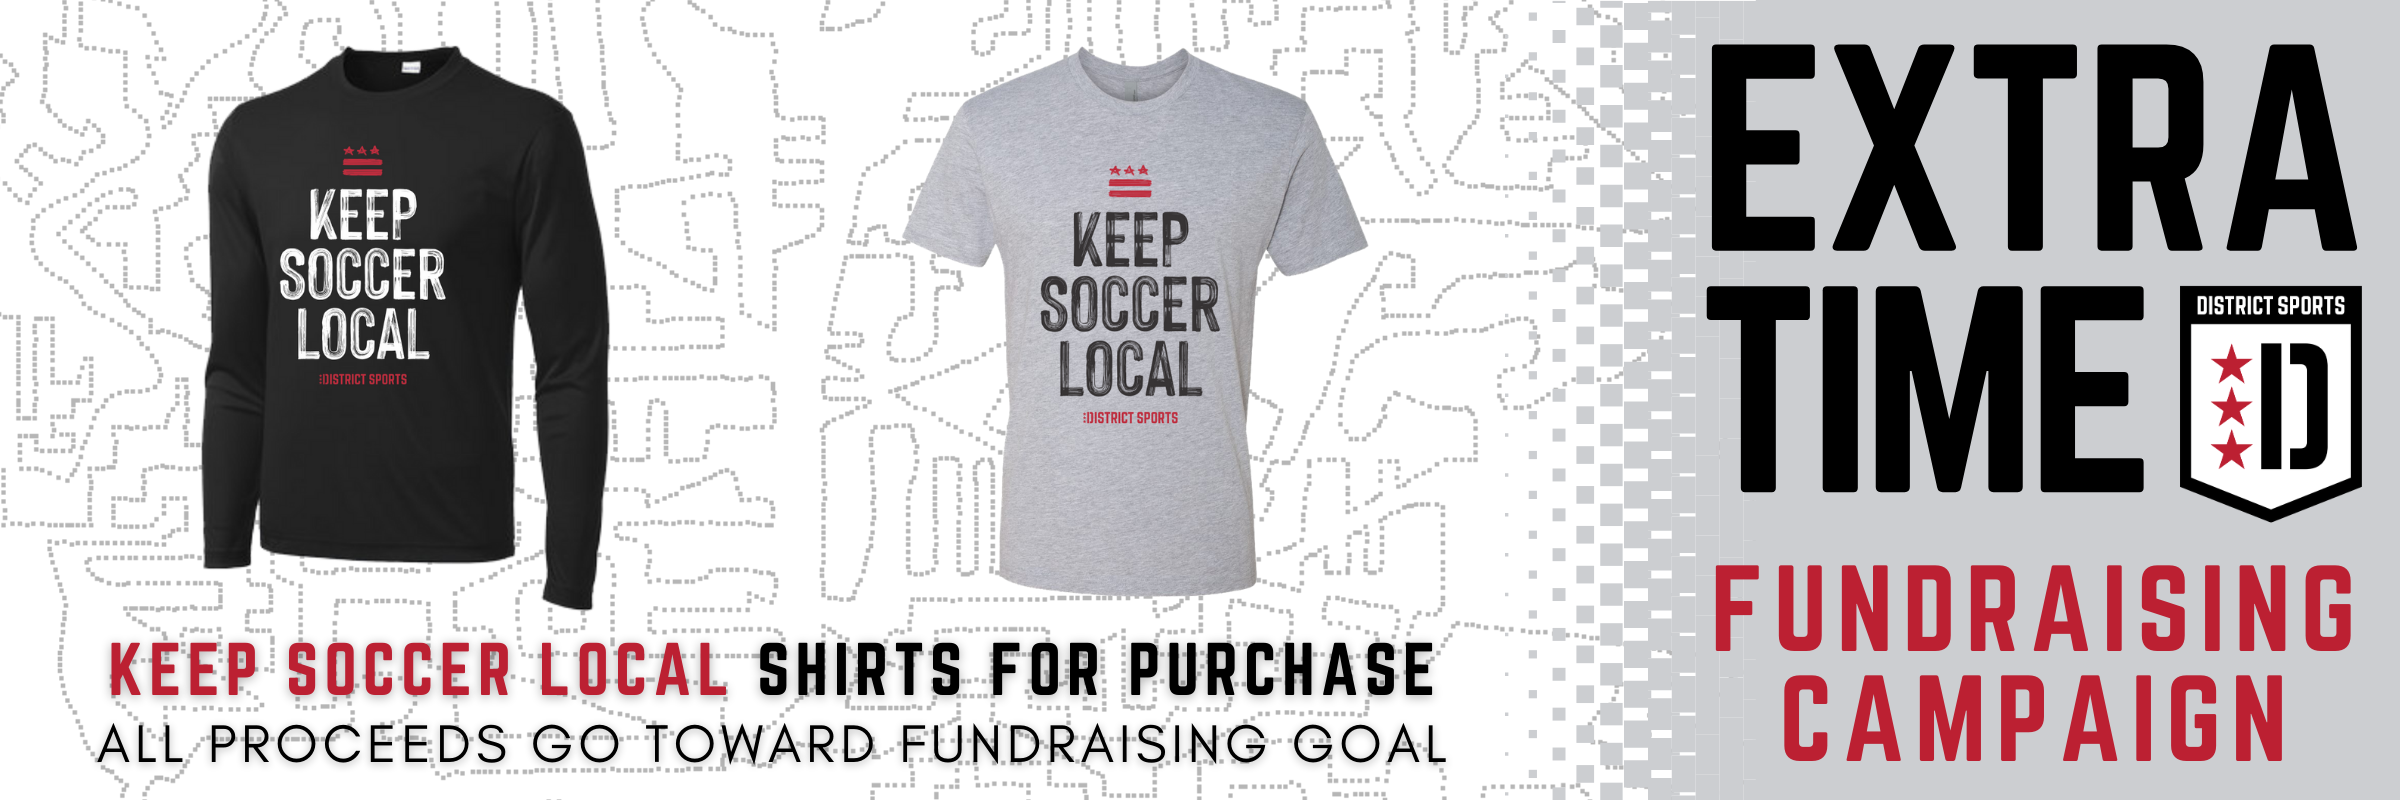 KEEP SOCCER LOCAL Shirts Available for Purchase!